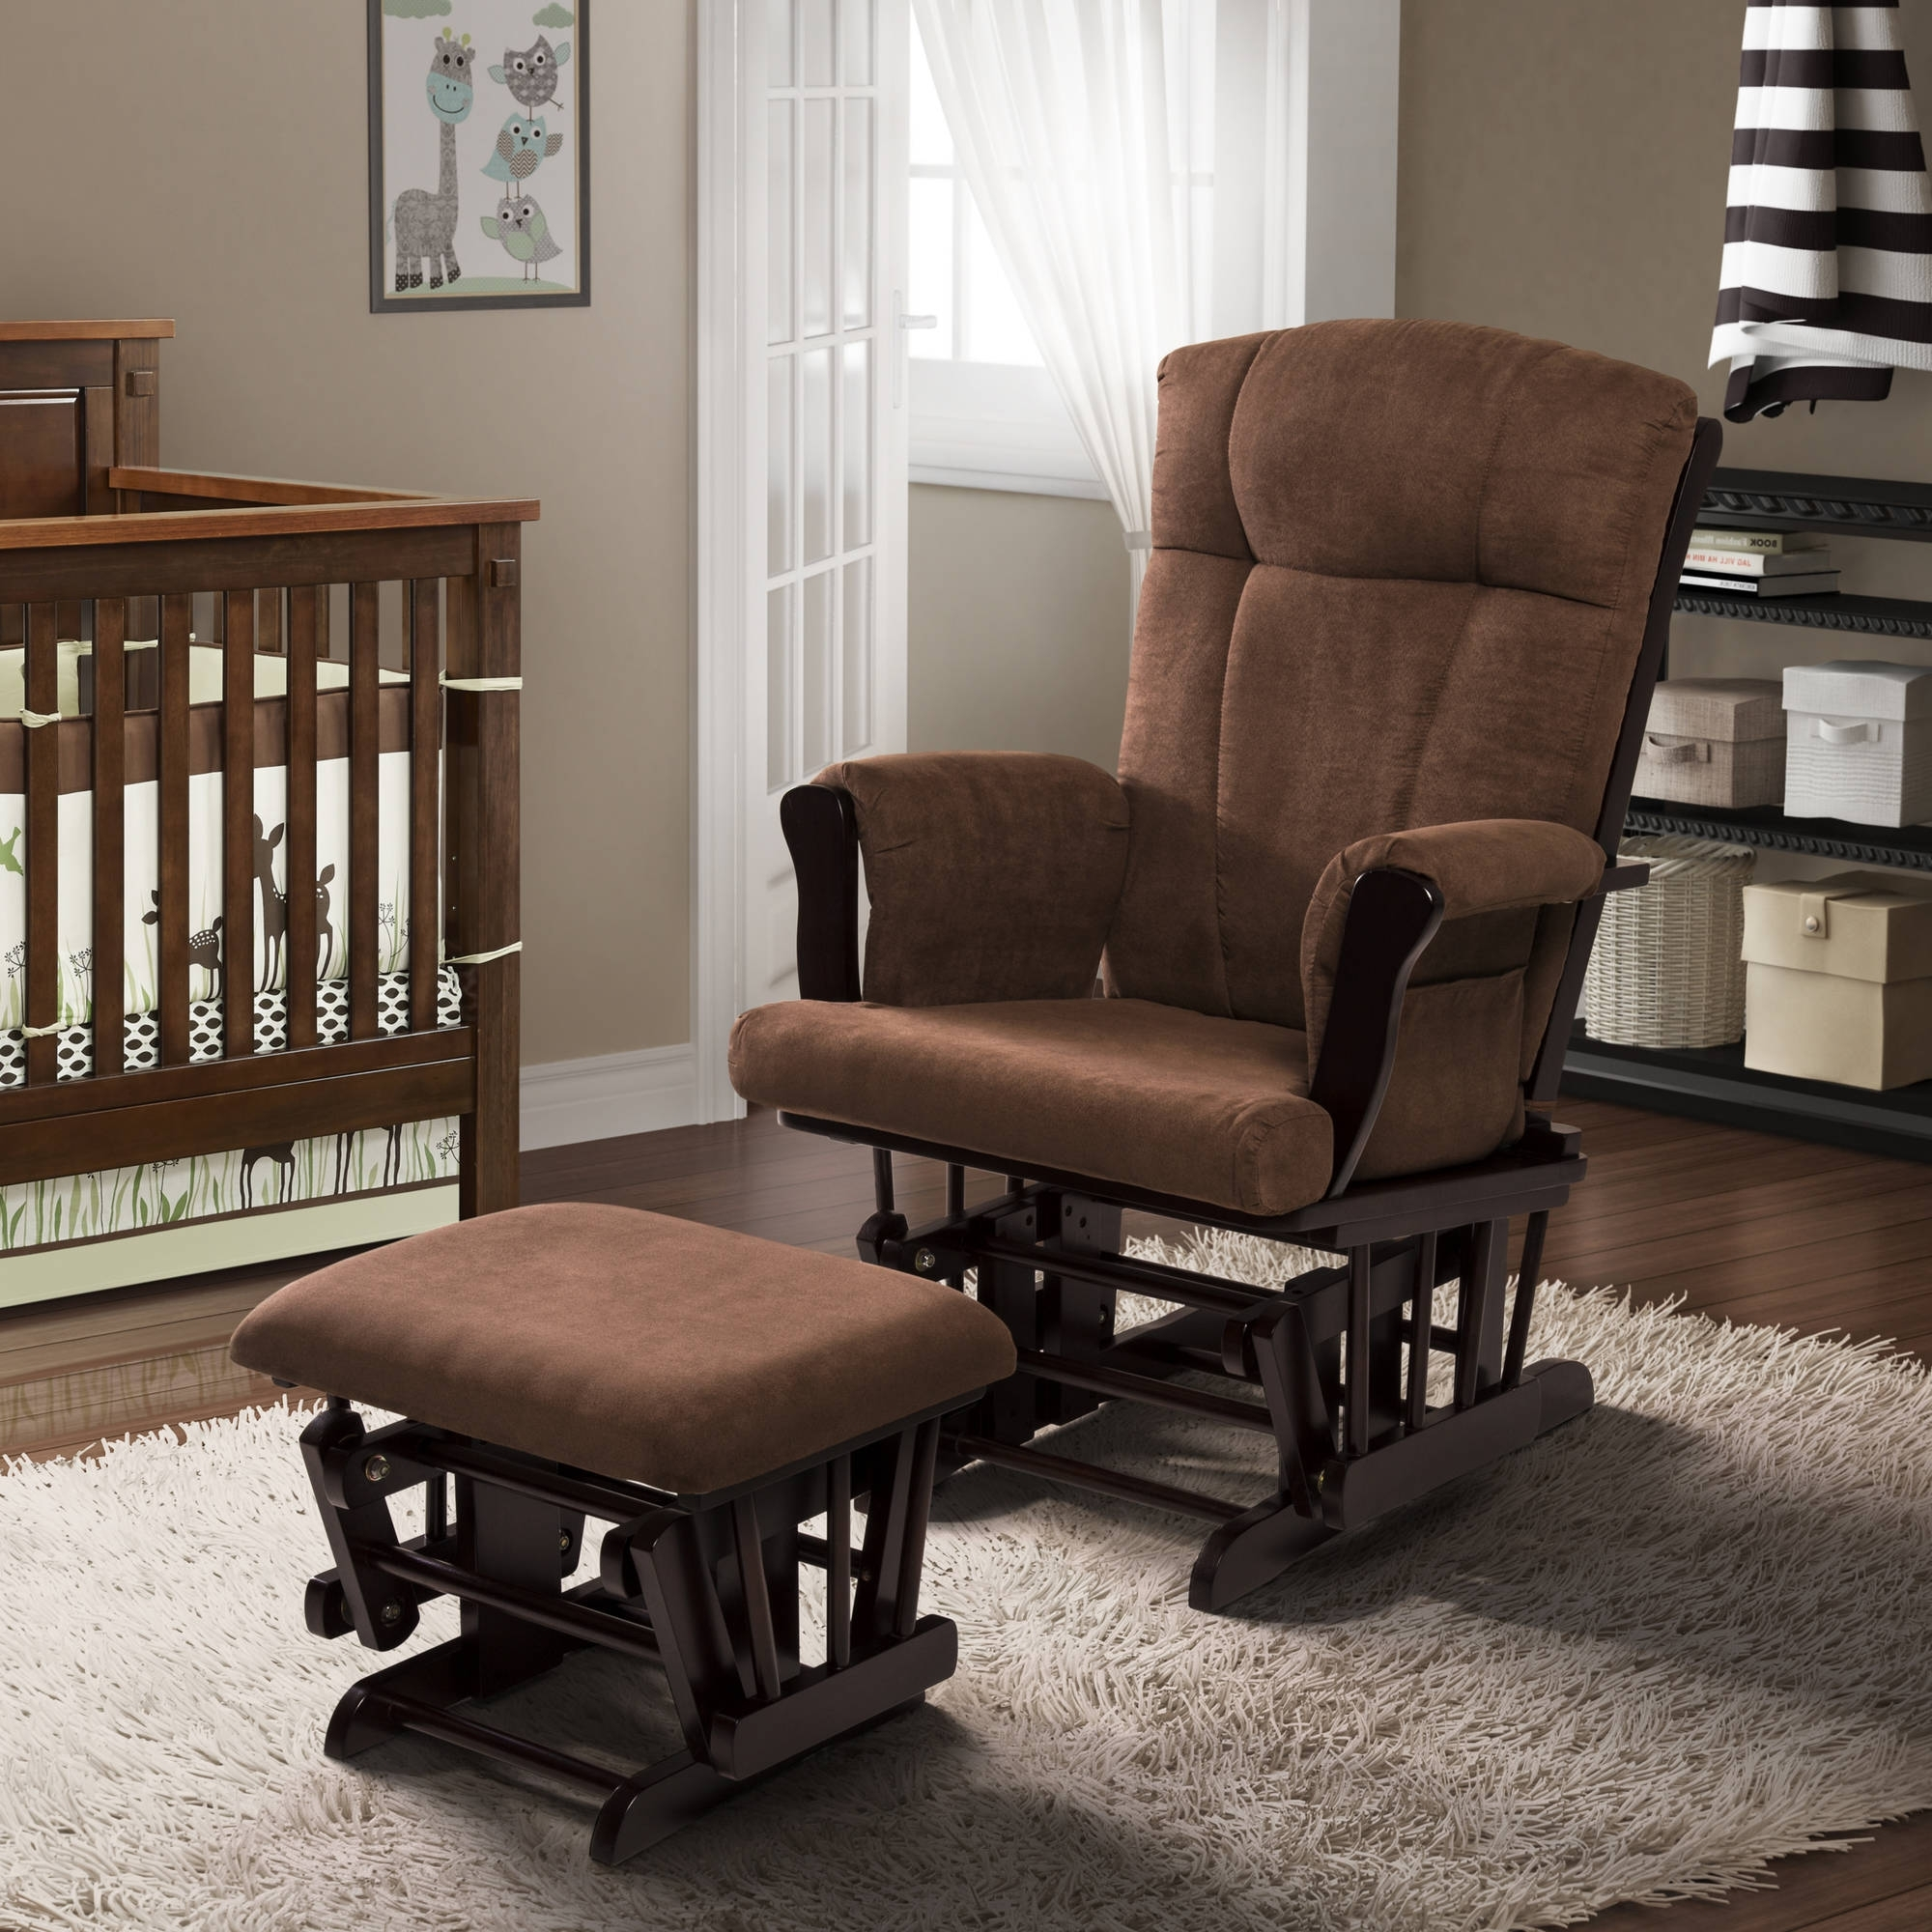 Most Popular Baby Relax Hadley Double Rocker Dark Taupe – Walmart Throughout Rocking Chairs At Walmart (View 6 of 15)